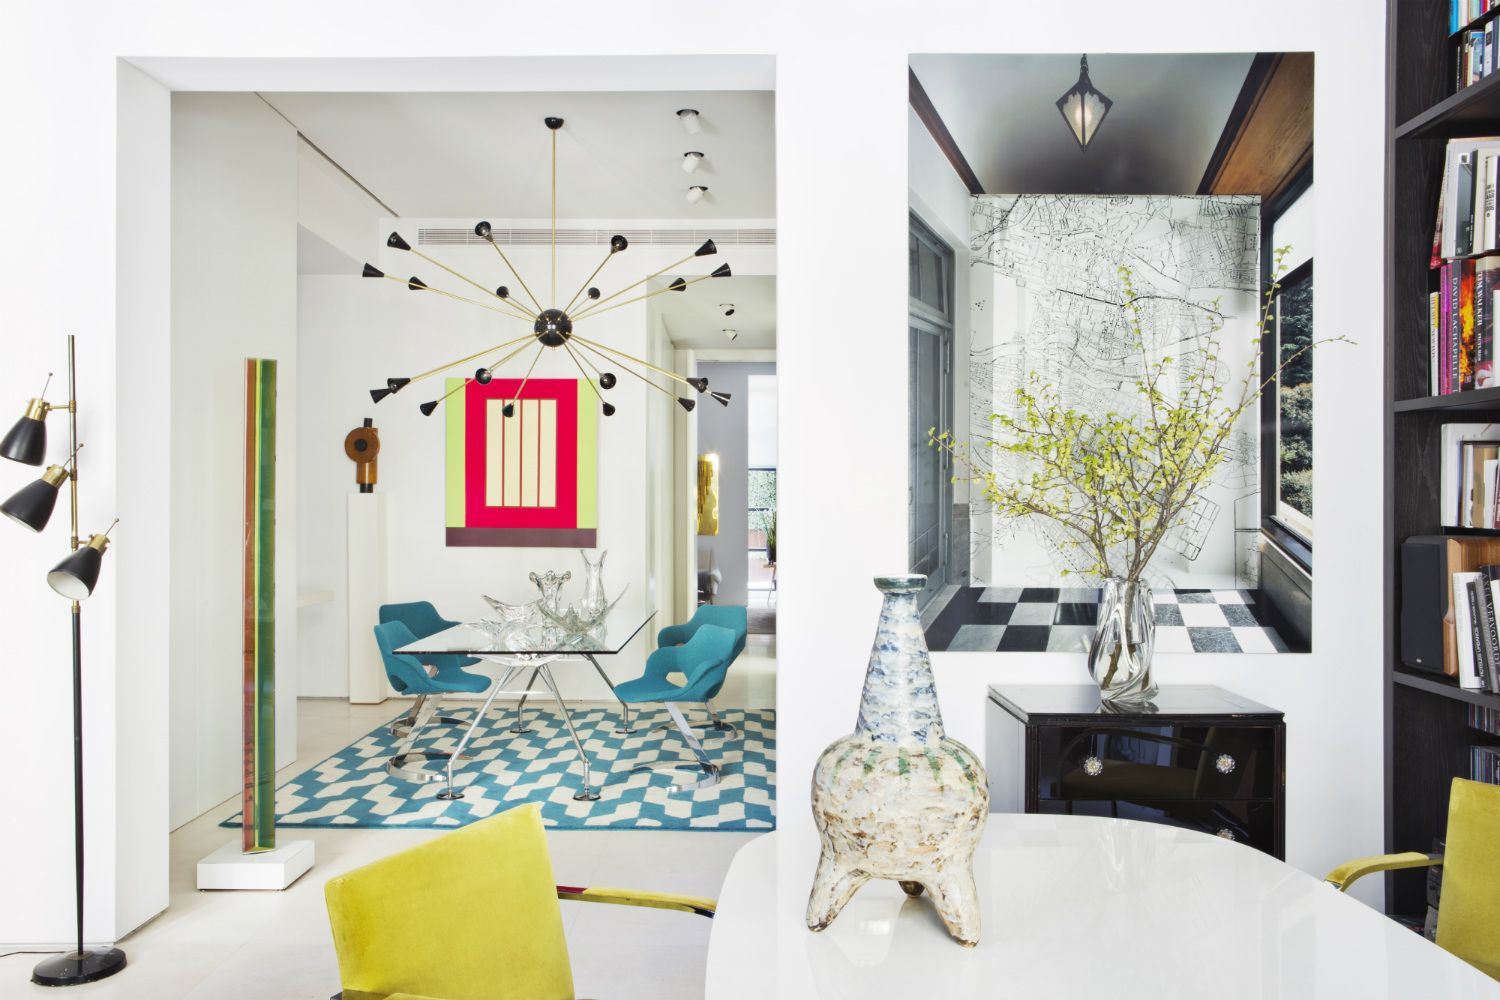 Home Tour: A Designer Transforms A Former Office Into His Colourful Apartment